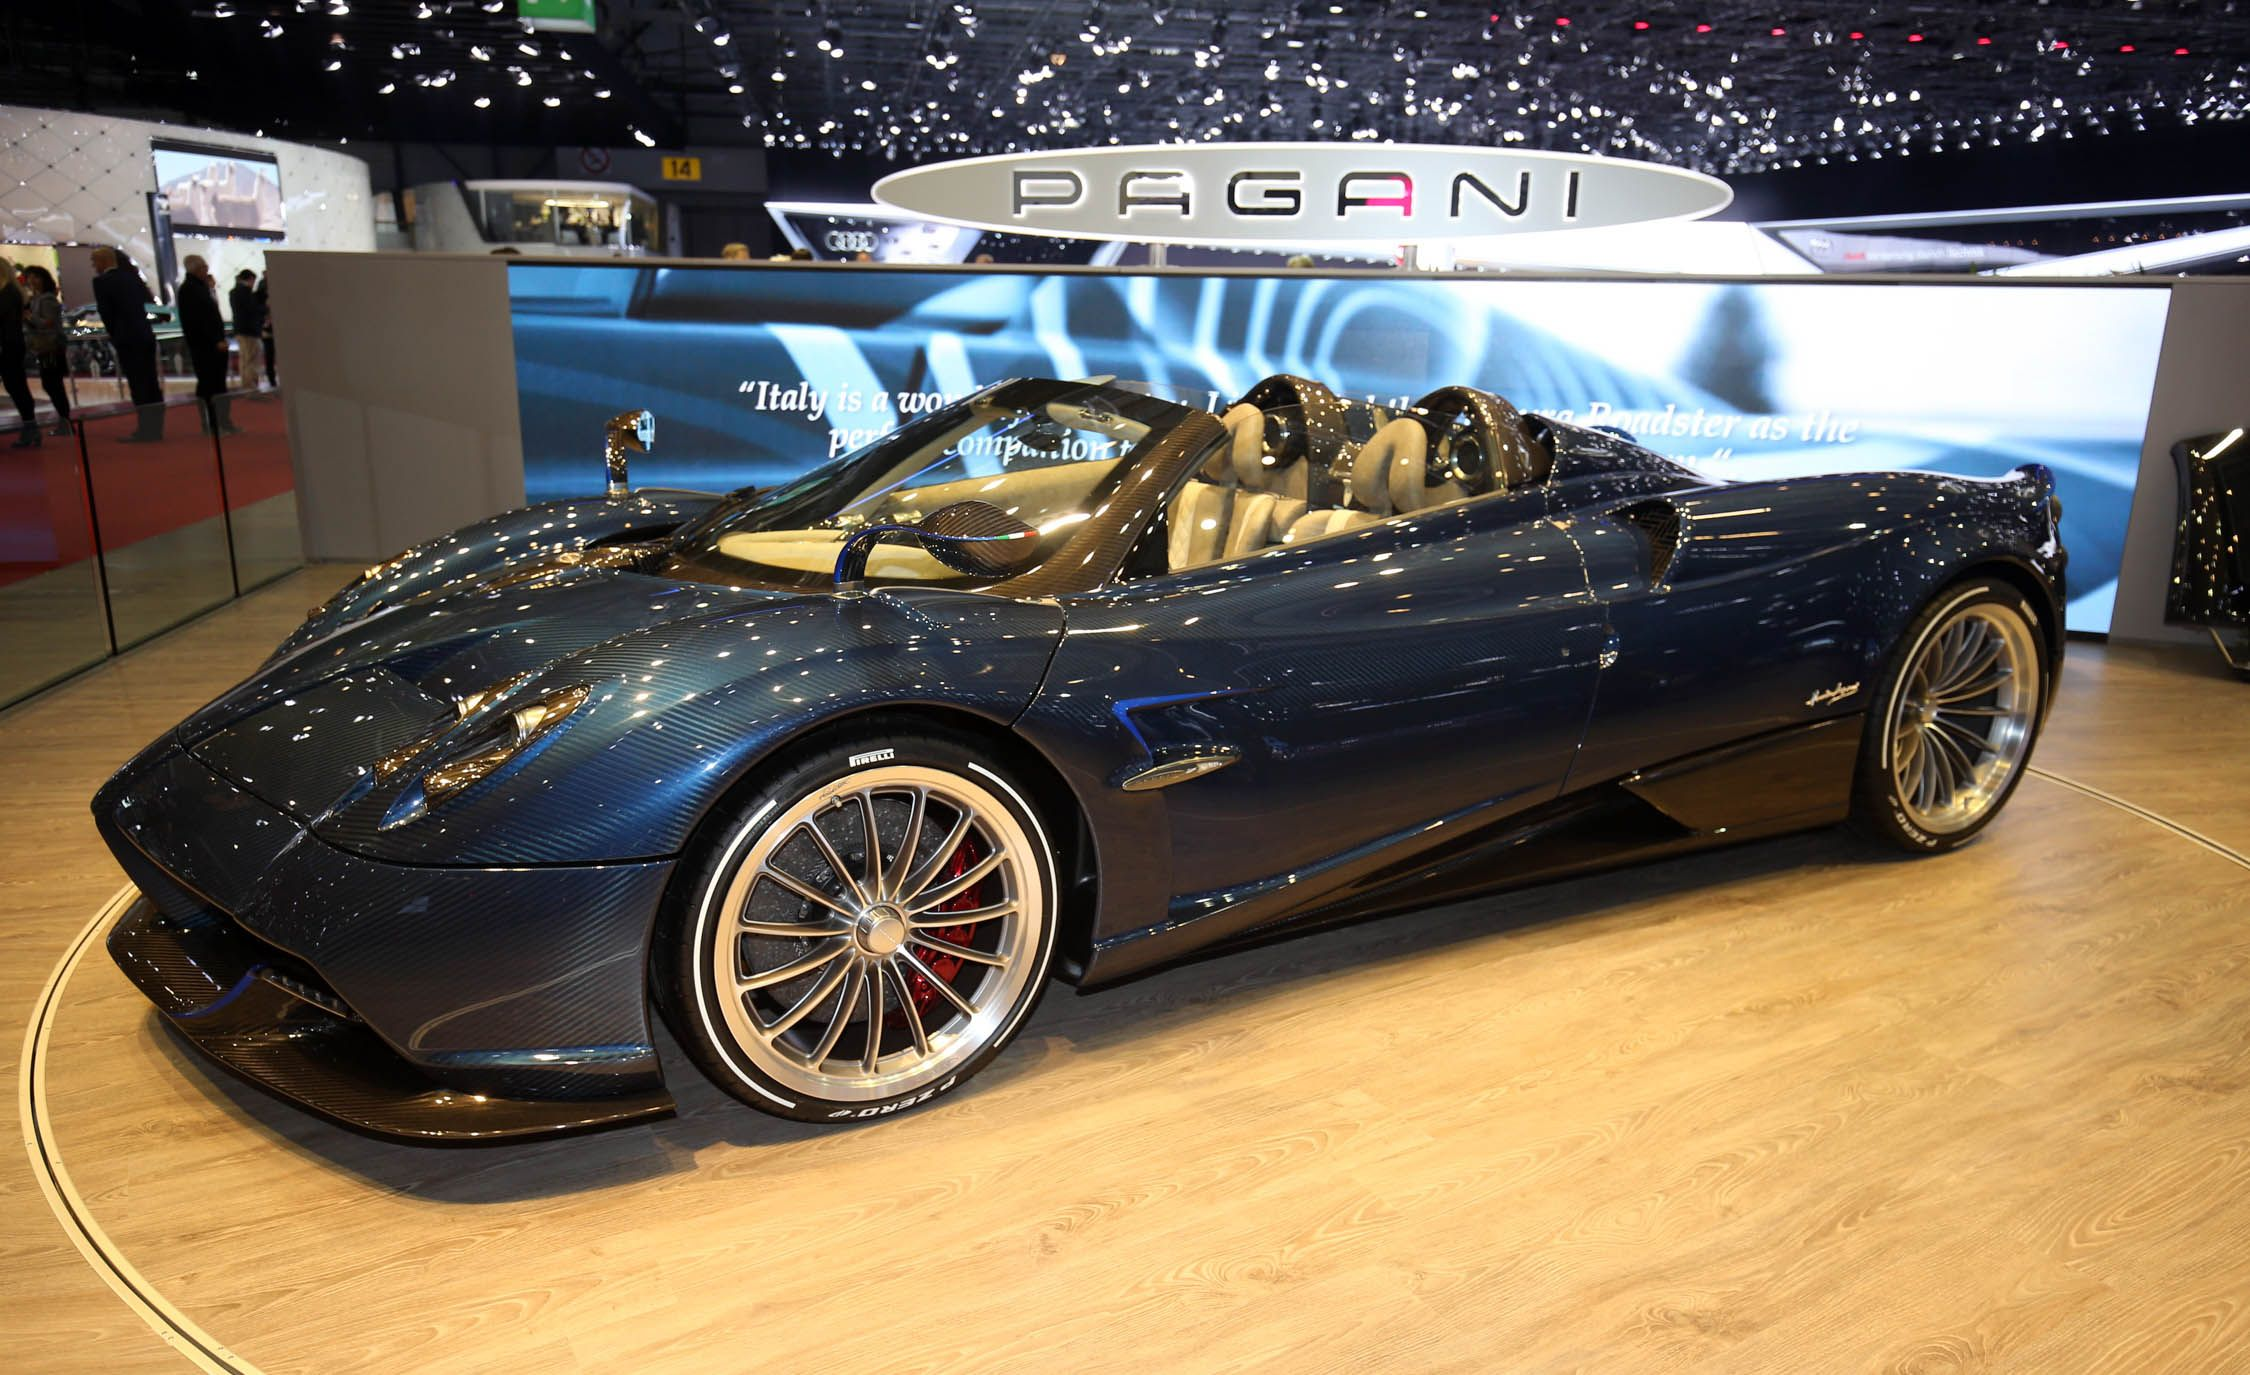 Superior Pagani Huayra Reviews | Pagani Huayra Price, Photos, And Specs | Car And  Driver